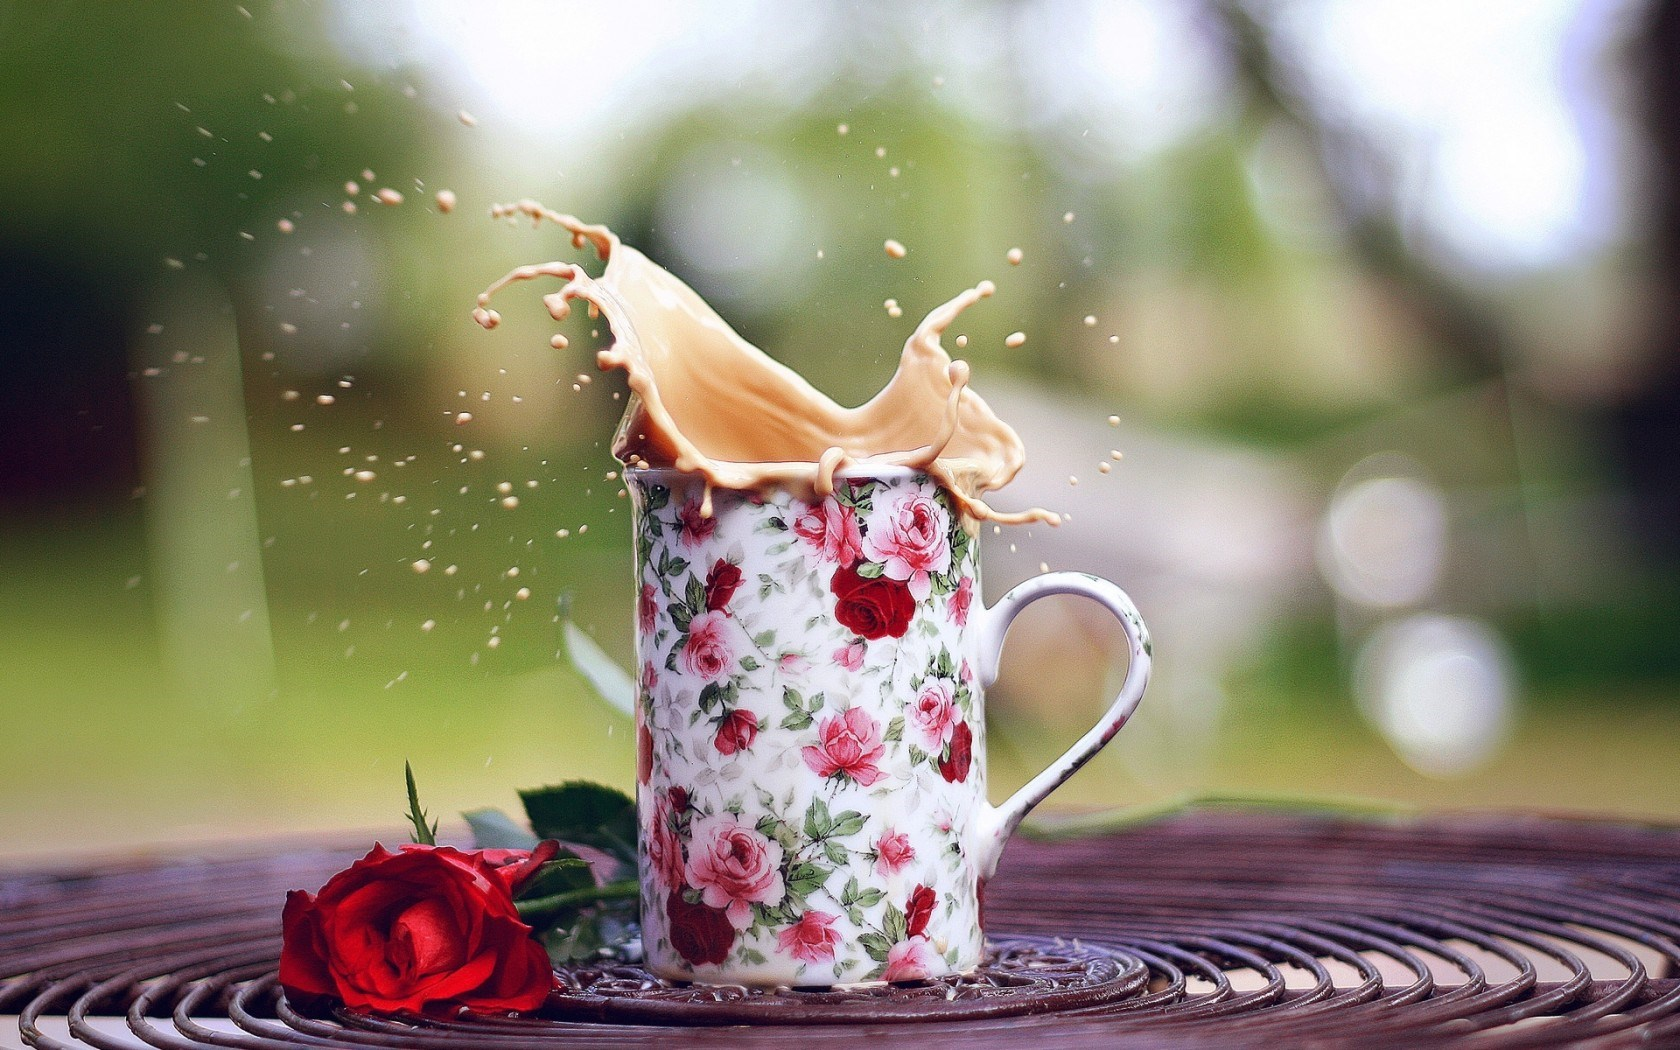 Mood Cup Mug Spray Splash Roses Flowers